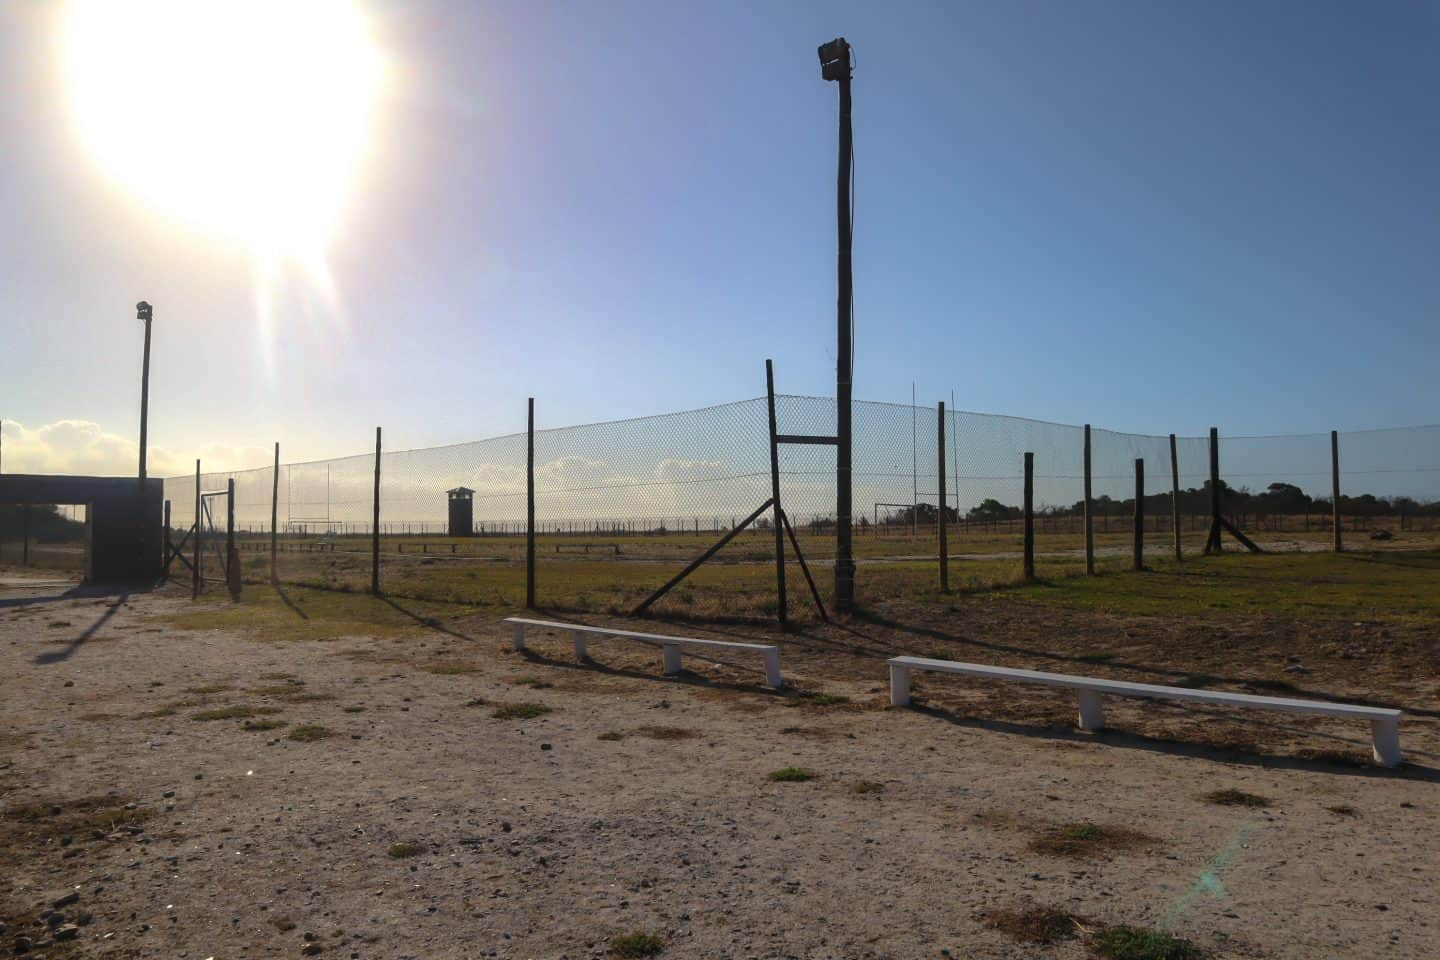 The playing fields on Robben Island